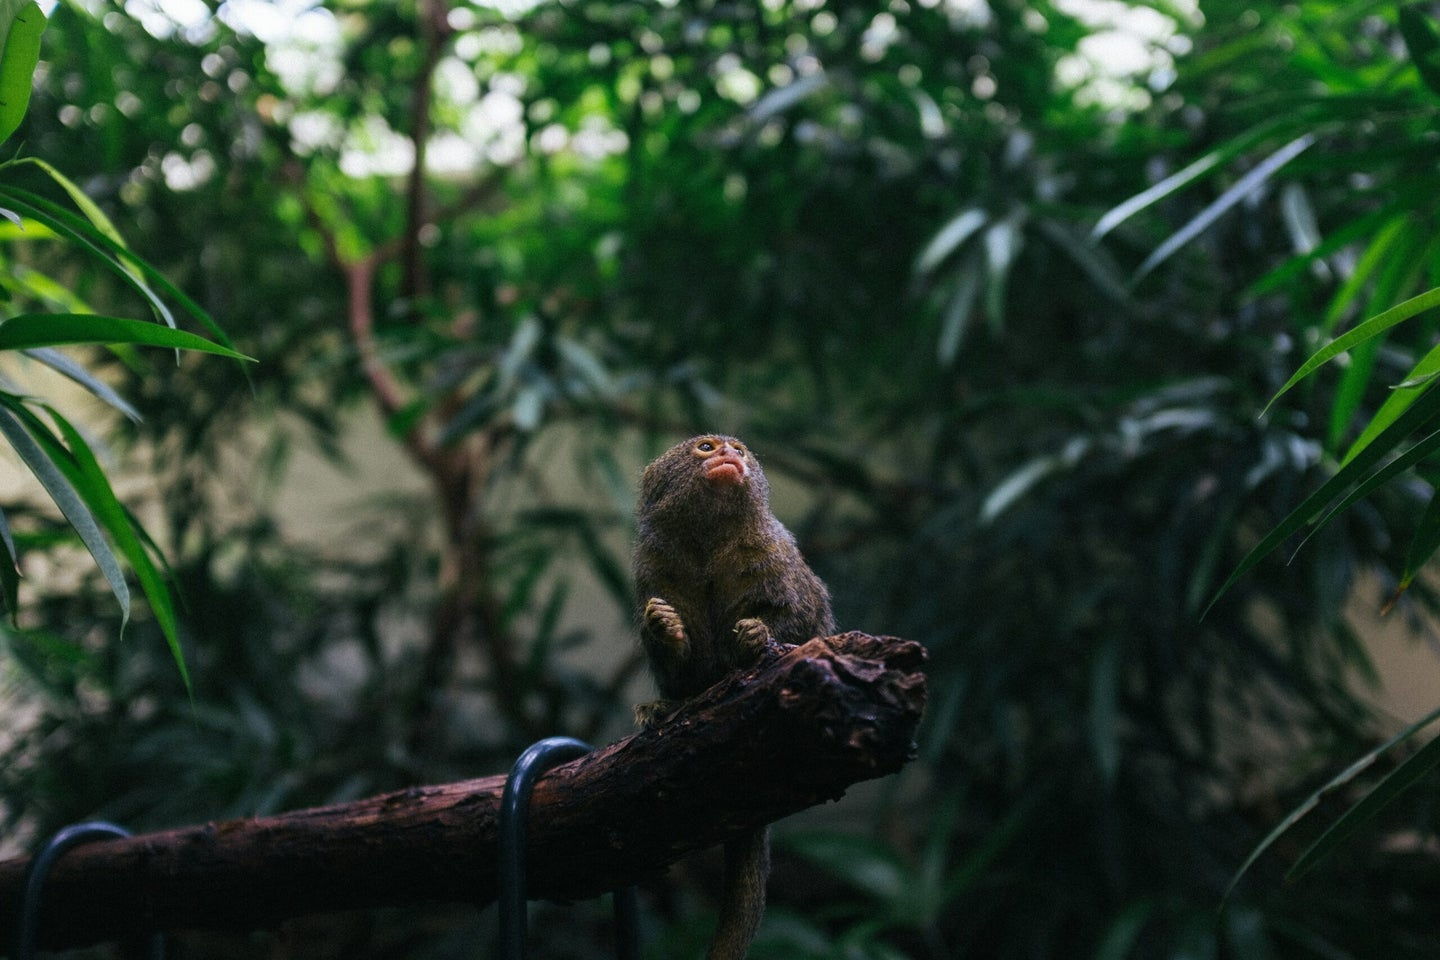 small monkey sitting on a branch looking up and to the right